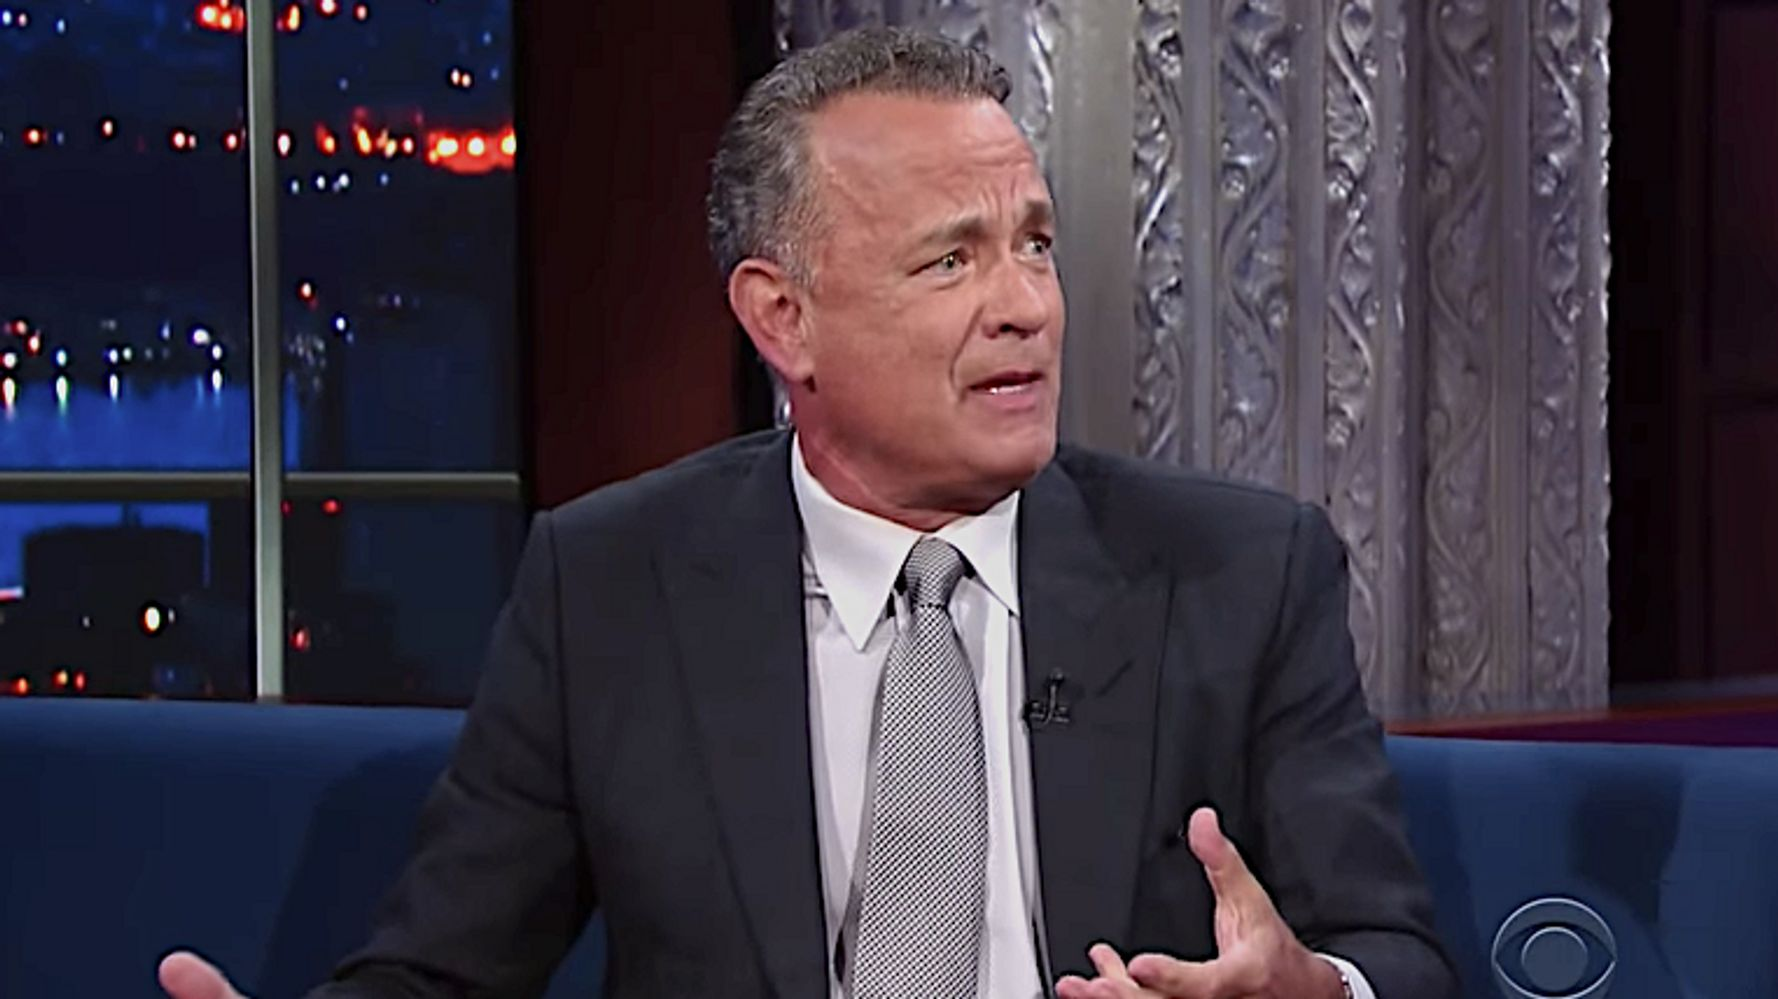 Tom Hanks Got 'Screwed' During 'Secret' Vacation With The Obamas